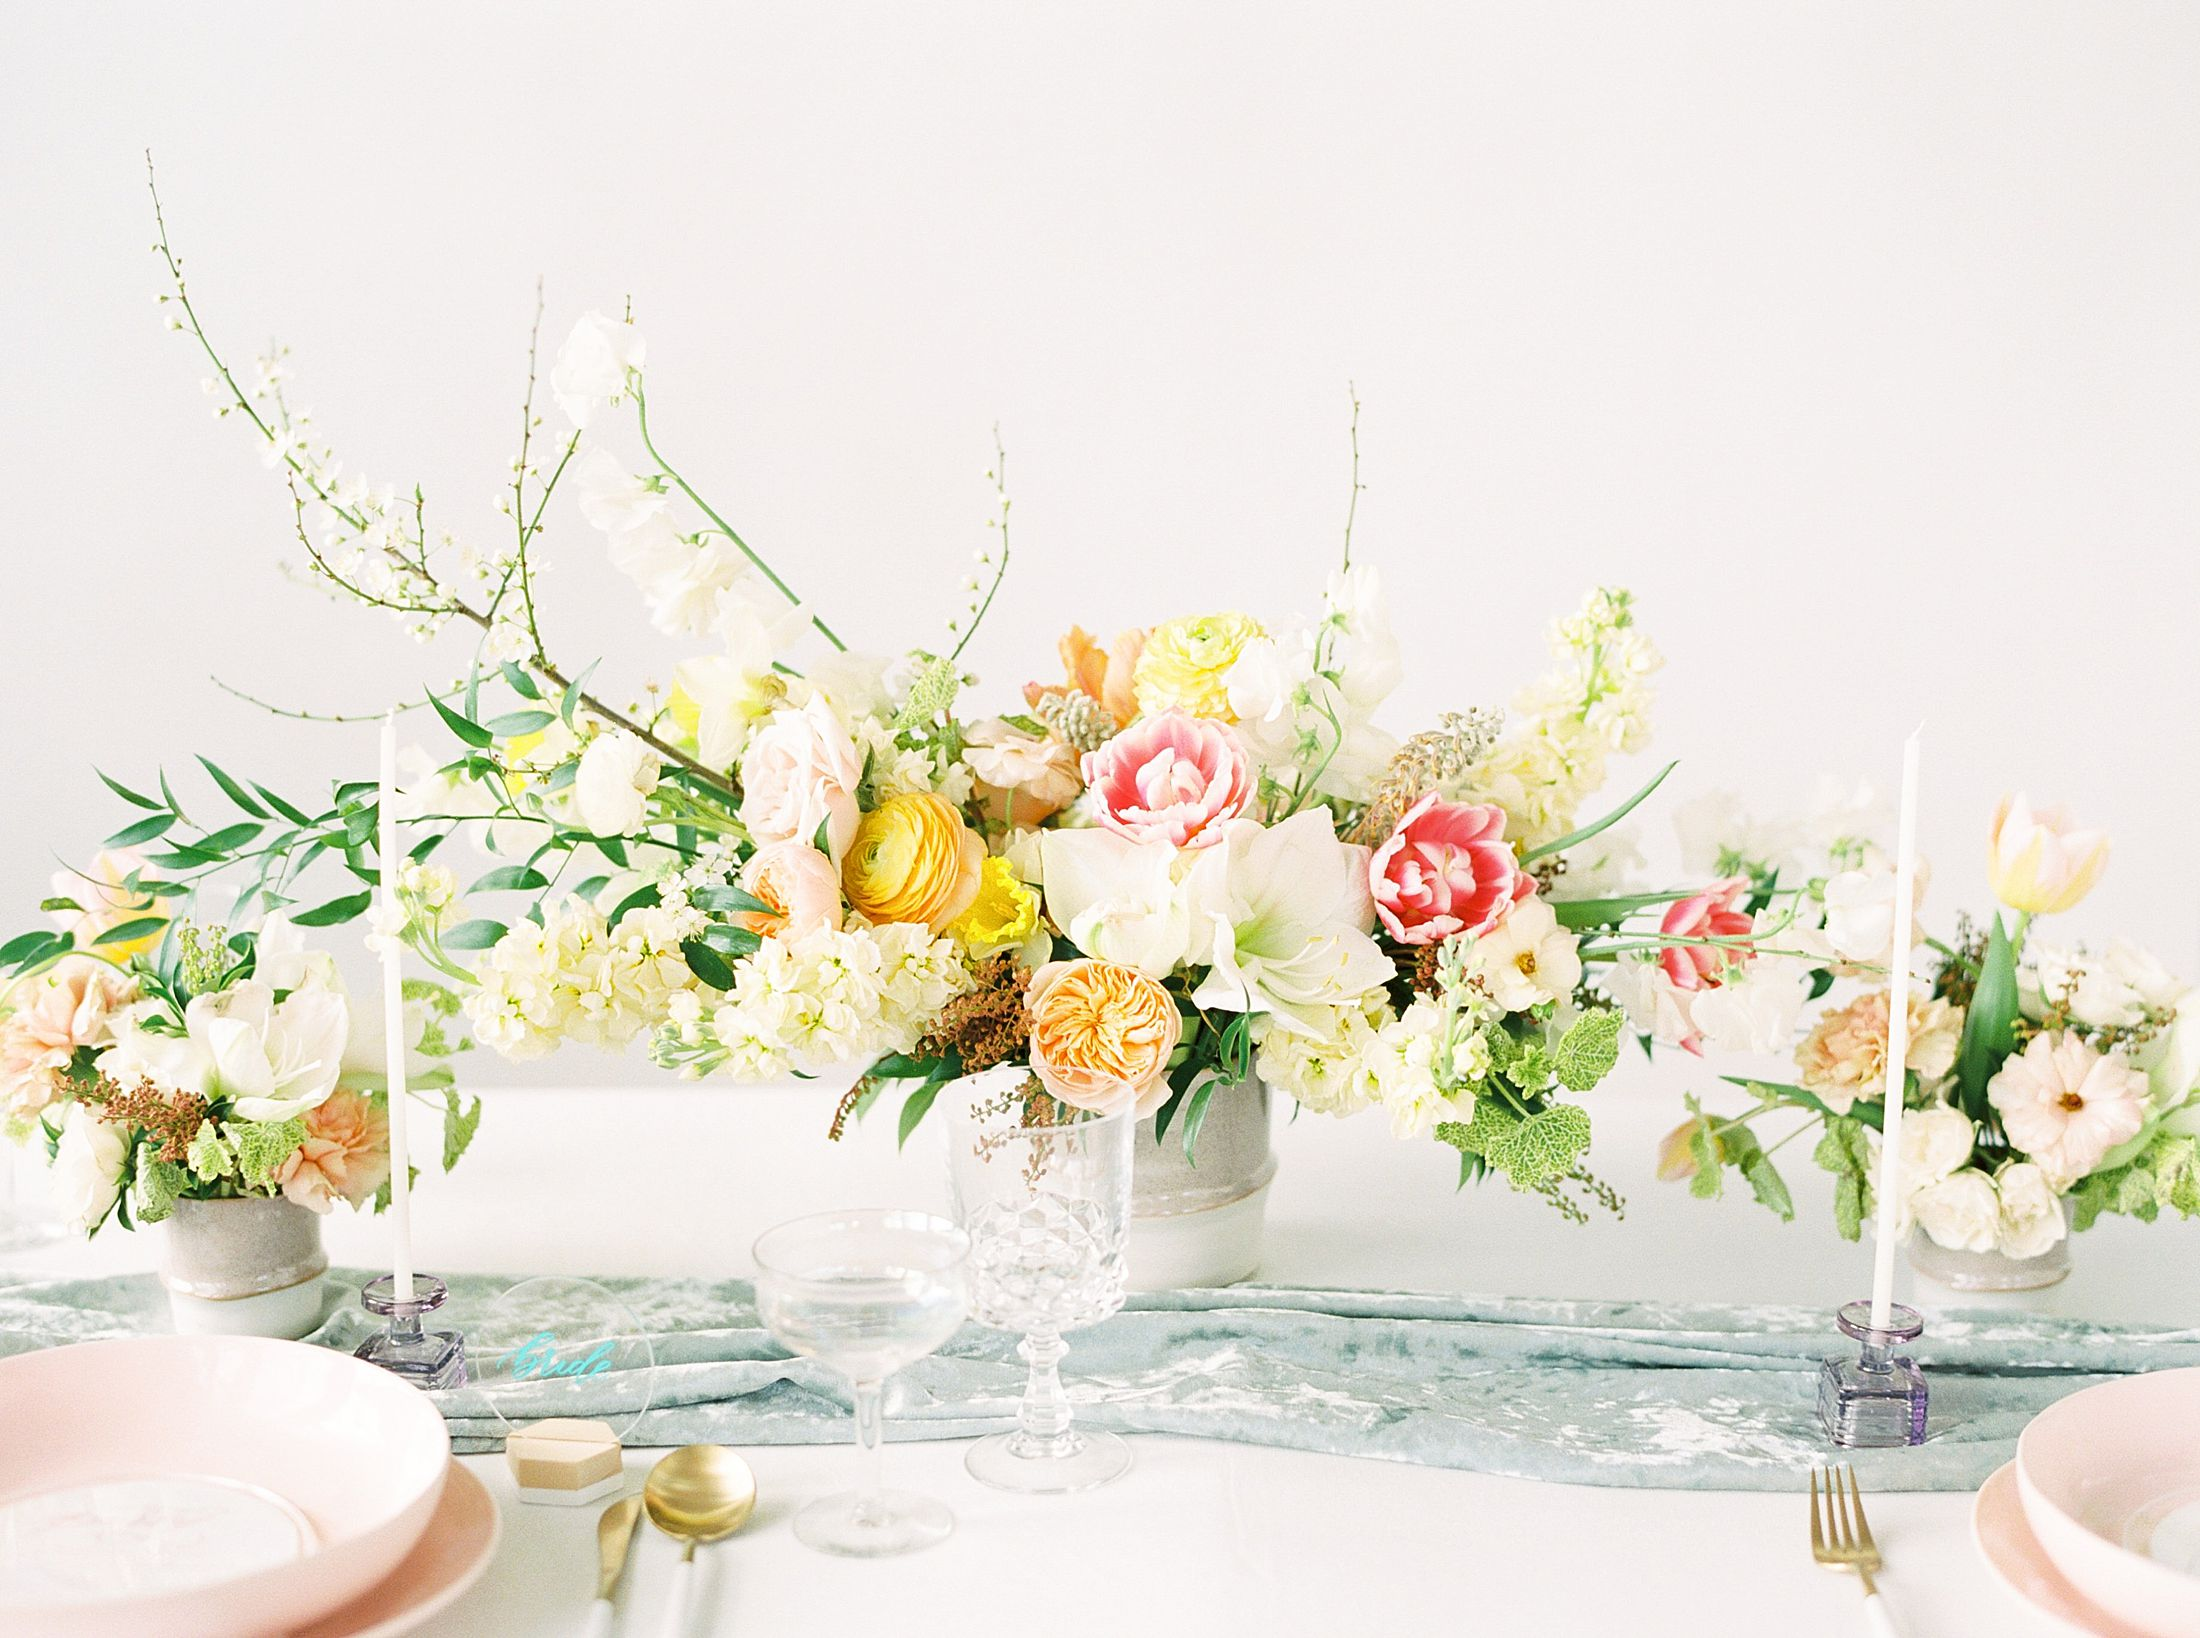 Bay Area Spring Wedding Inspiration - Ashley Baumgartner - Inspired By This - Party Crush Studio and Lens of Lenox Videography - Bay Area Wedding Photography_0034.jpg